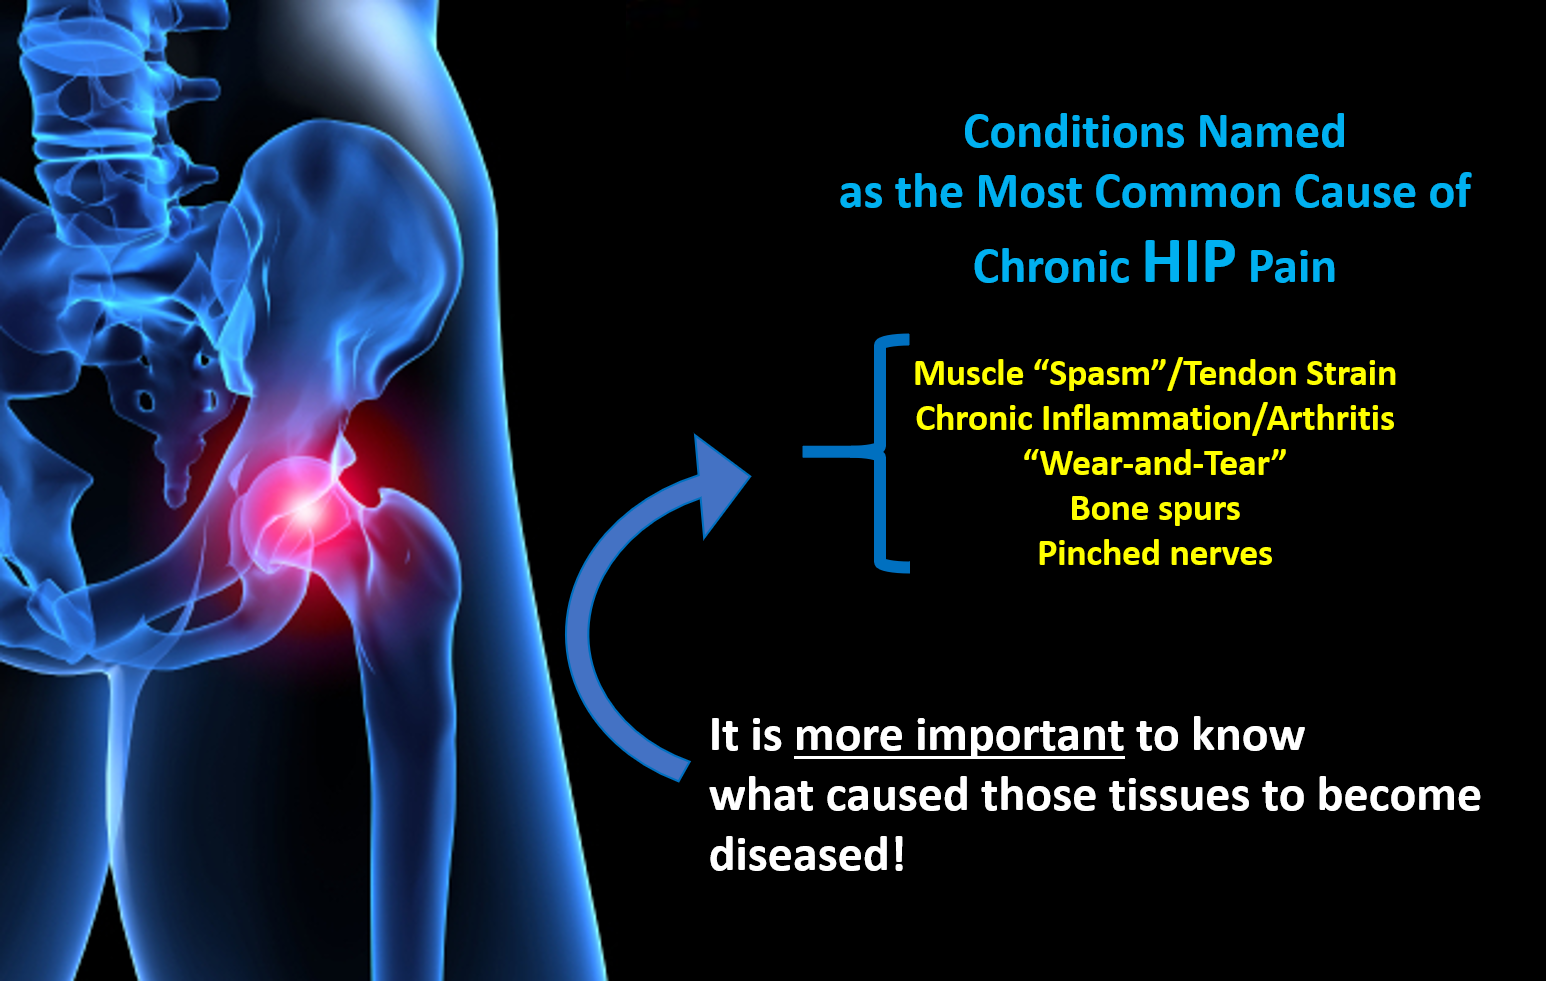 Most common cause of chronic hip pain